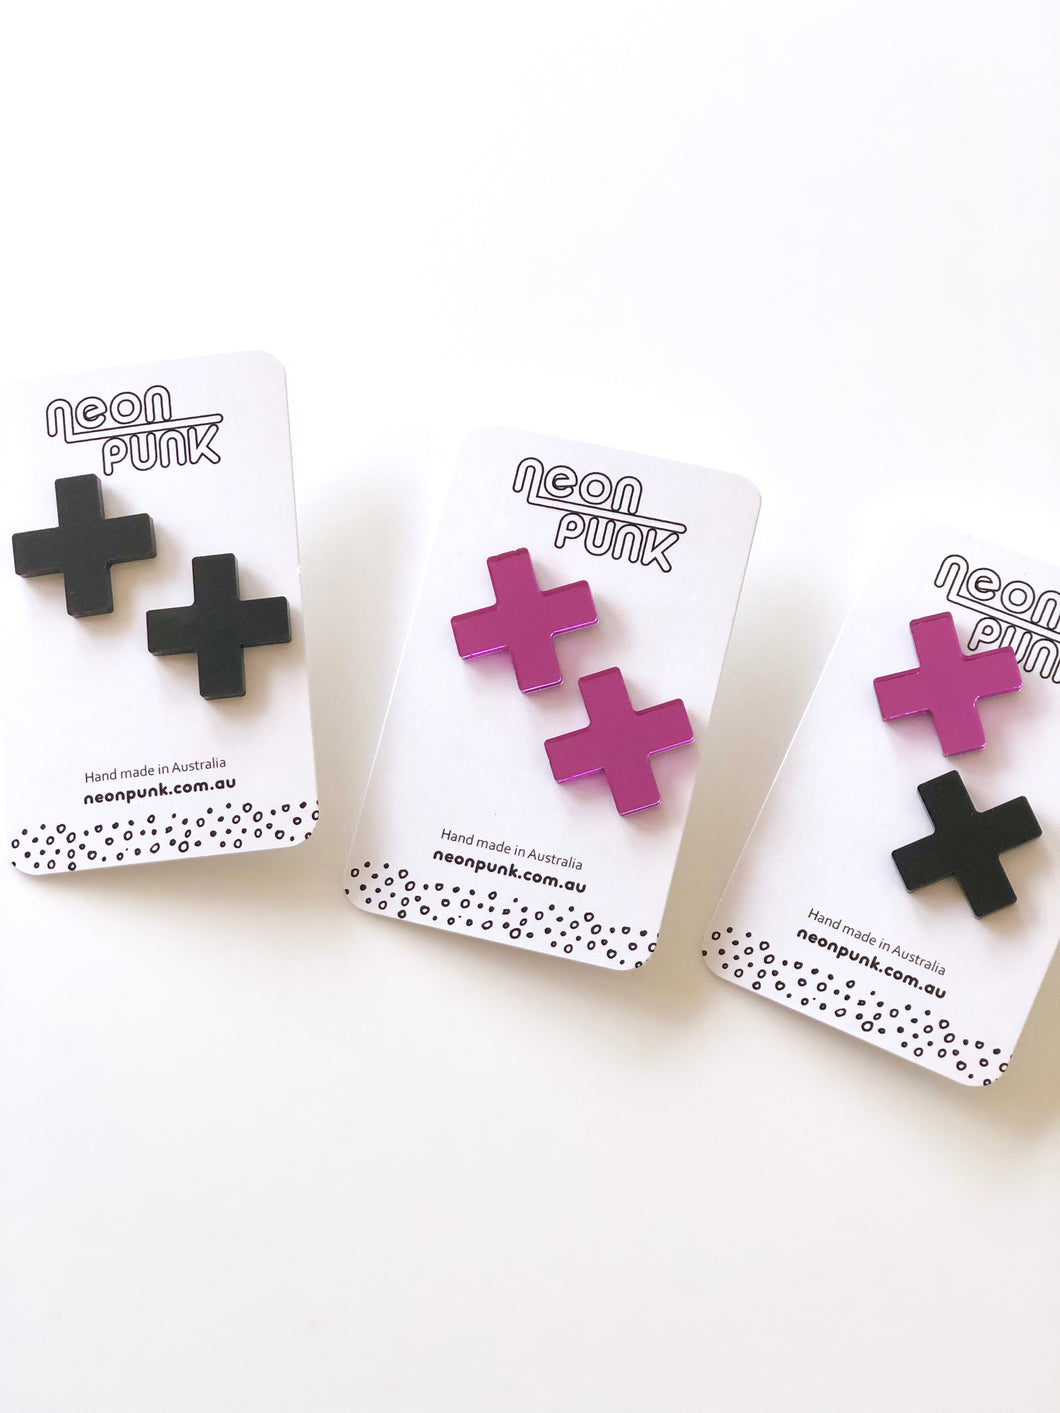 Don't Cross Me Statement Studs Acrylic Earrings